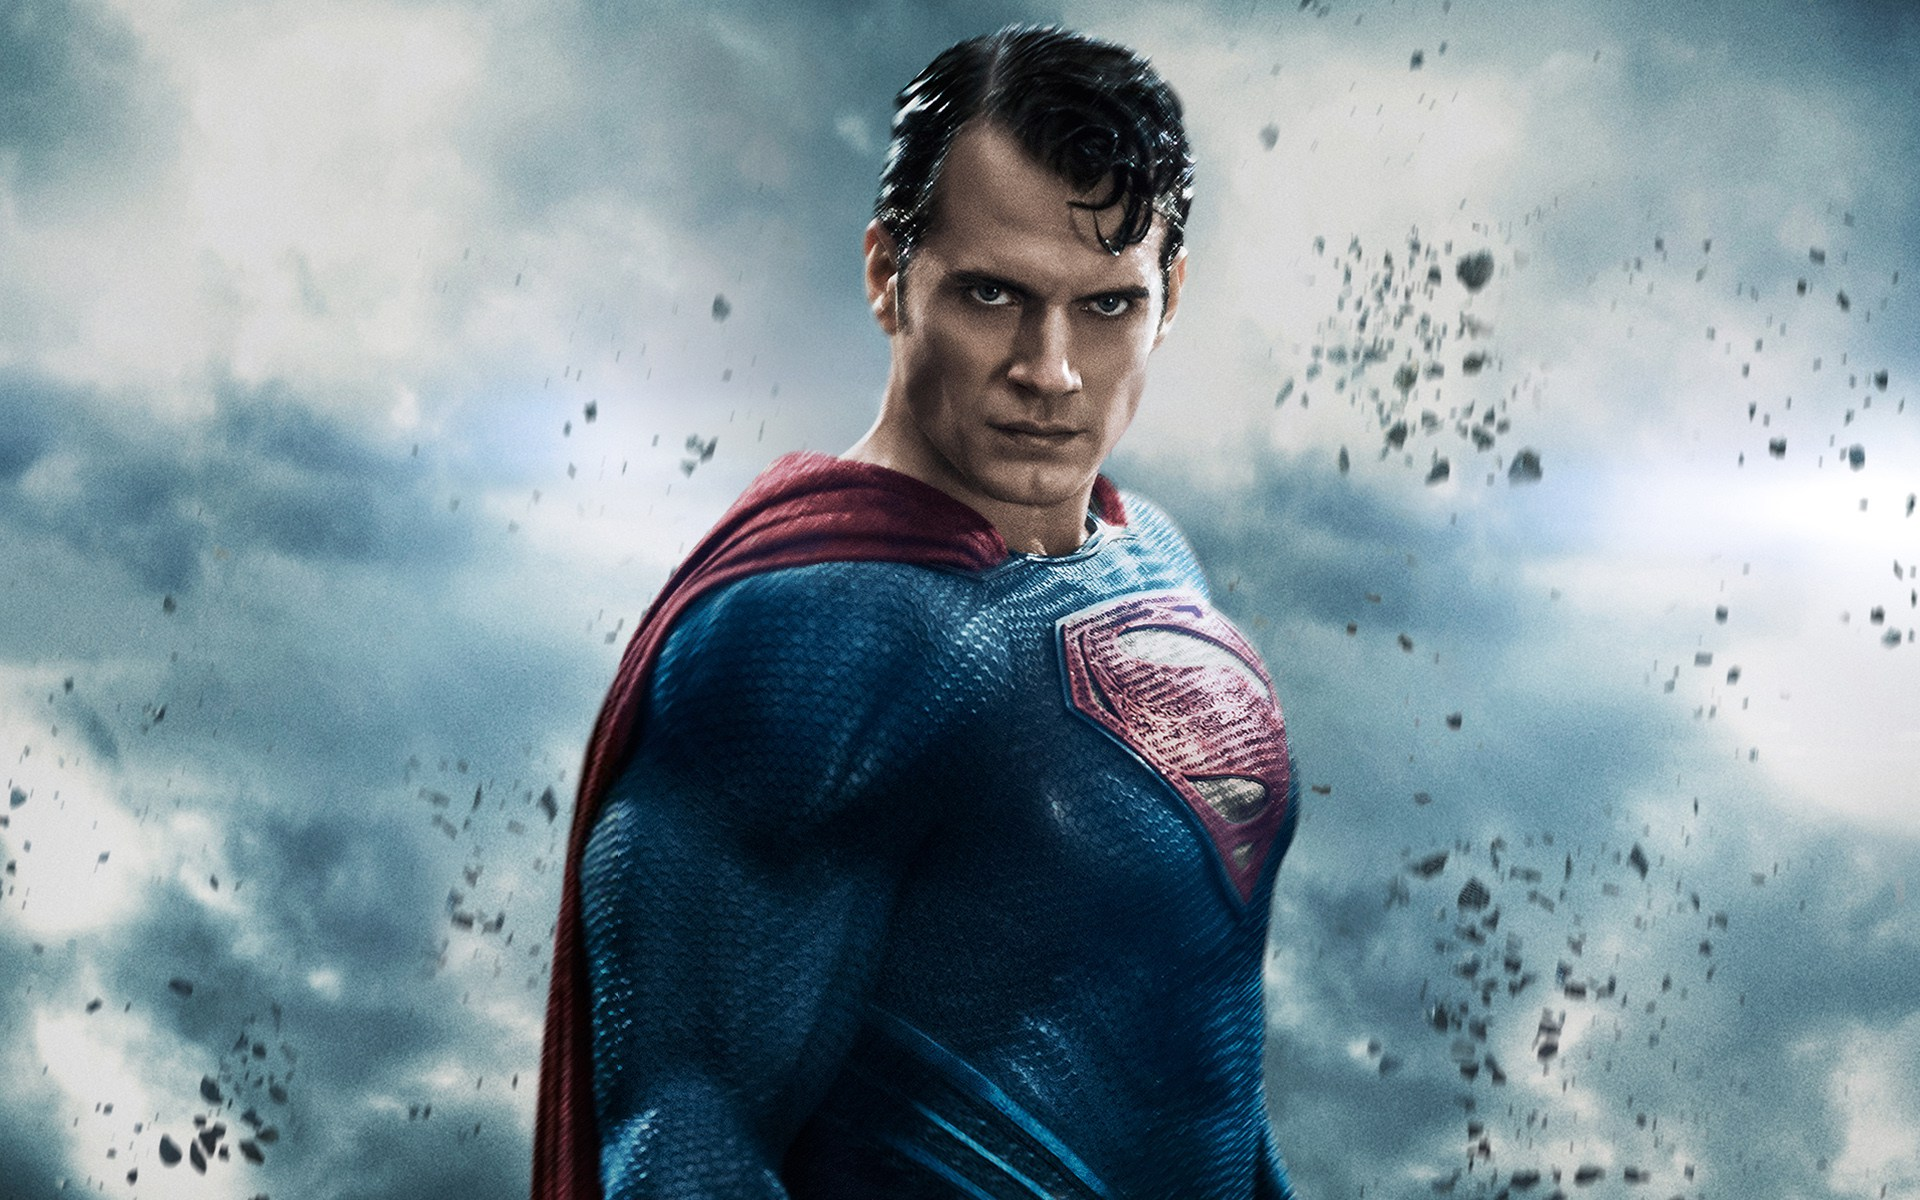 henry_cavill_batman_v_superman-wide.jpg